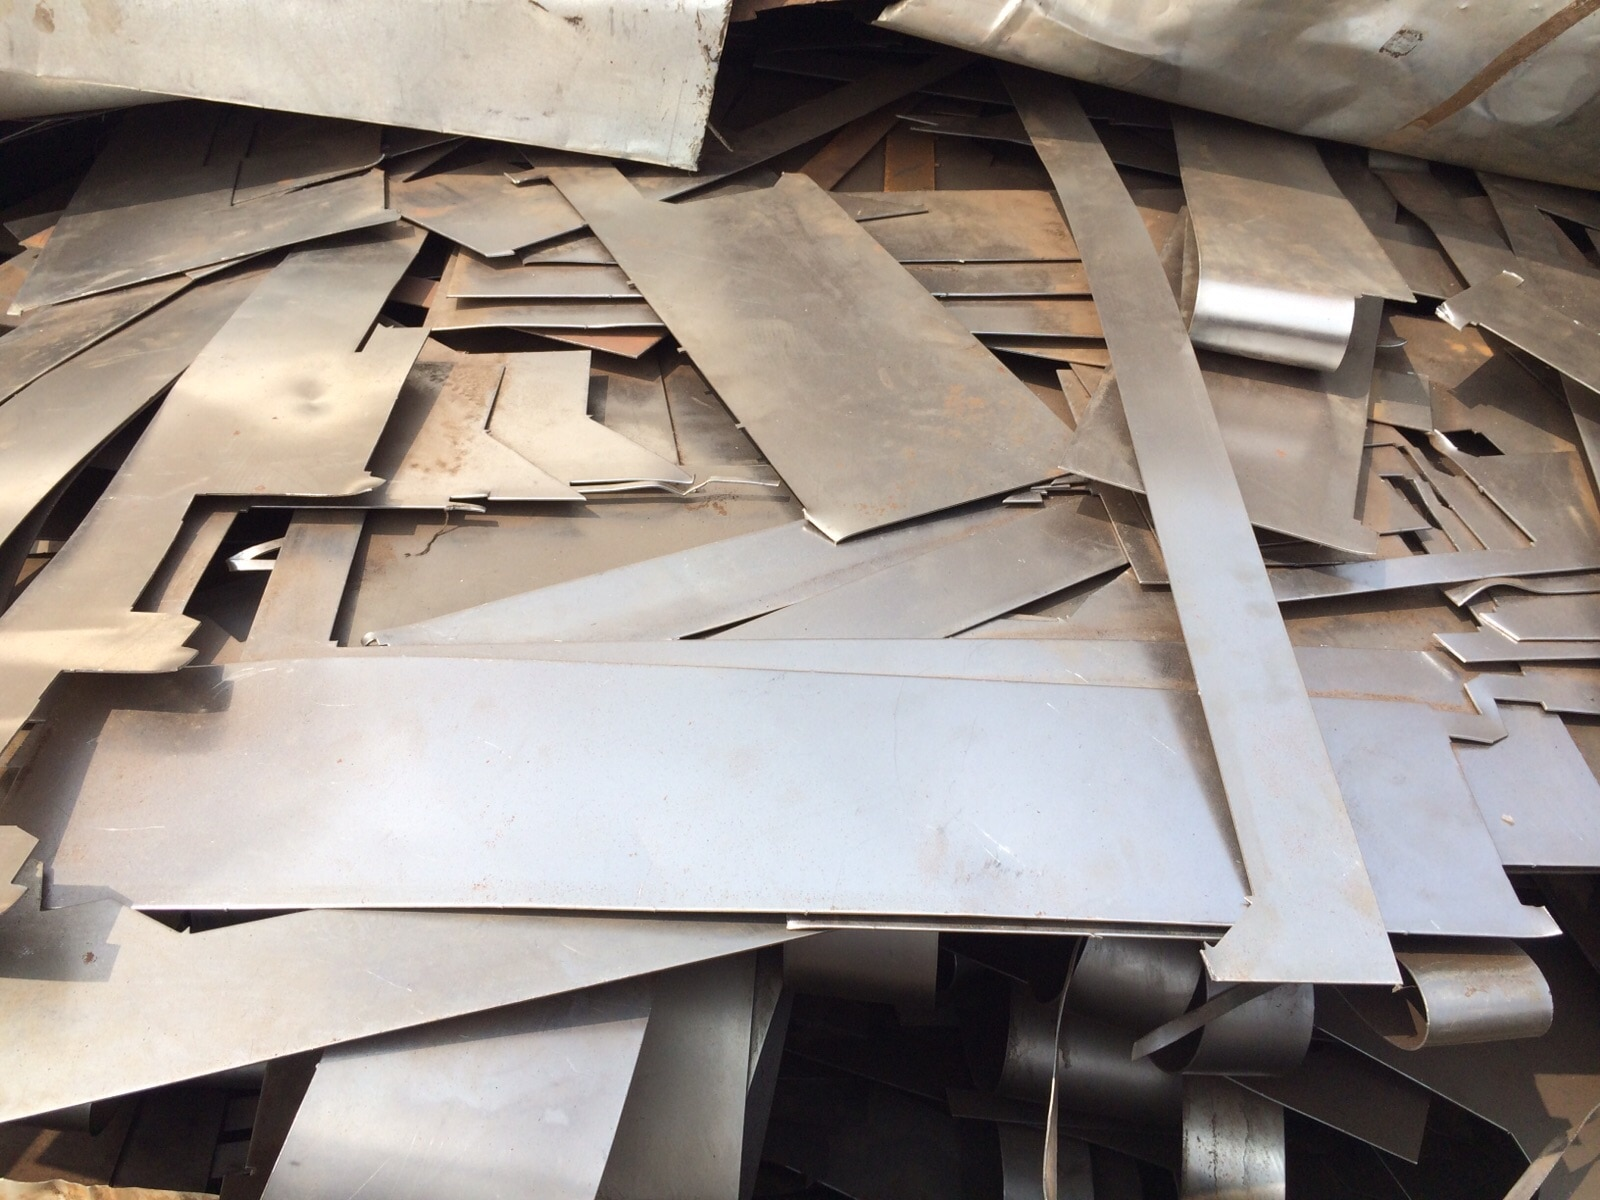 Cold Rolled Coil Sheet Scrap (CRC Sheet Scrap)  Radhe Krishna Industries are a trusted name when it comes to buy the best grade Cold Rolled Coil Sheet Scrap. Specially sourced from trusted vendors, the Cold Rolled Coil Sheet Scrap offered by us contains metal in maximum concentration without any adulteration with foreign substances. Our offered range is tested on well define parameters to ensure quality. Widely used in various industrial applications, our Cold Rolled Coil Sheet Scrap is the best choice available in the markets. This range is available in different packaging choices, at budget friendly prices.  Features:  Optimum composition Free from dust Resistance against abrasion  for more information : Mr. Rajat Gupta Radhe Krishna Industries  20/2, Amarnath Estate, Opp. HP petrol pump, Dehgam Road, Naorda, Ahmedabad.382330  Mob: 9227229623 / 9429738200 guptarrajat@gmail.com radhekrishnaind12@gmail.com  www.radhekrishnaindustries.com www.crcbundlescrap.com www.crcscrap.com